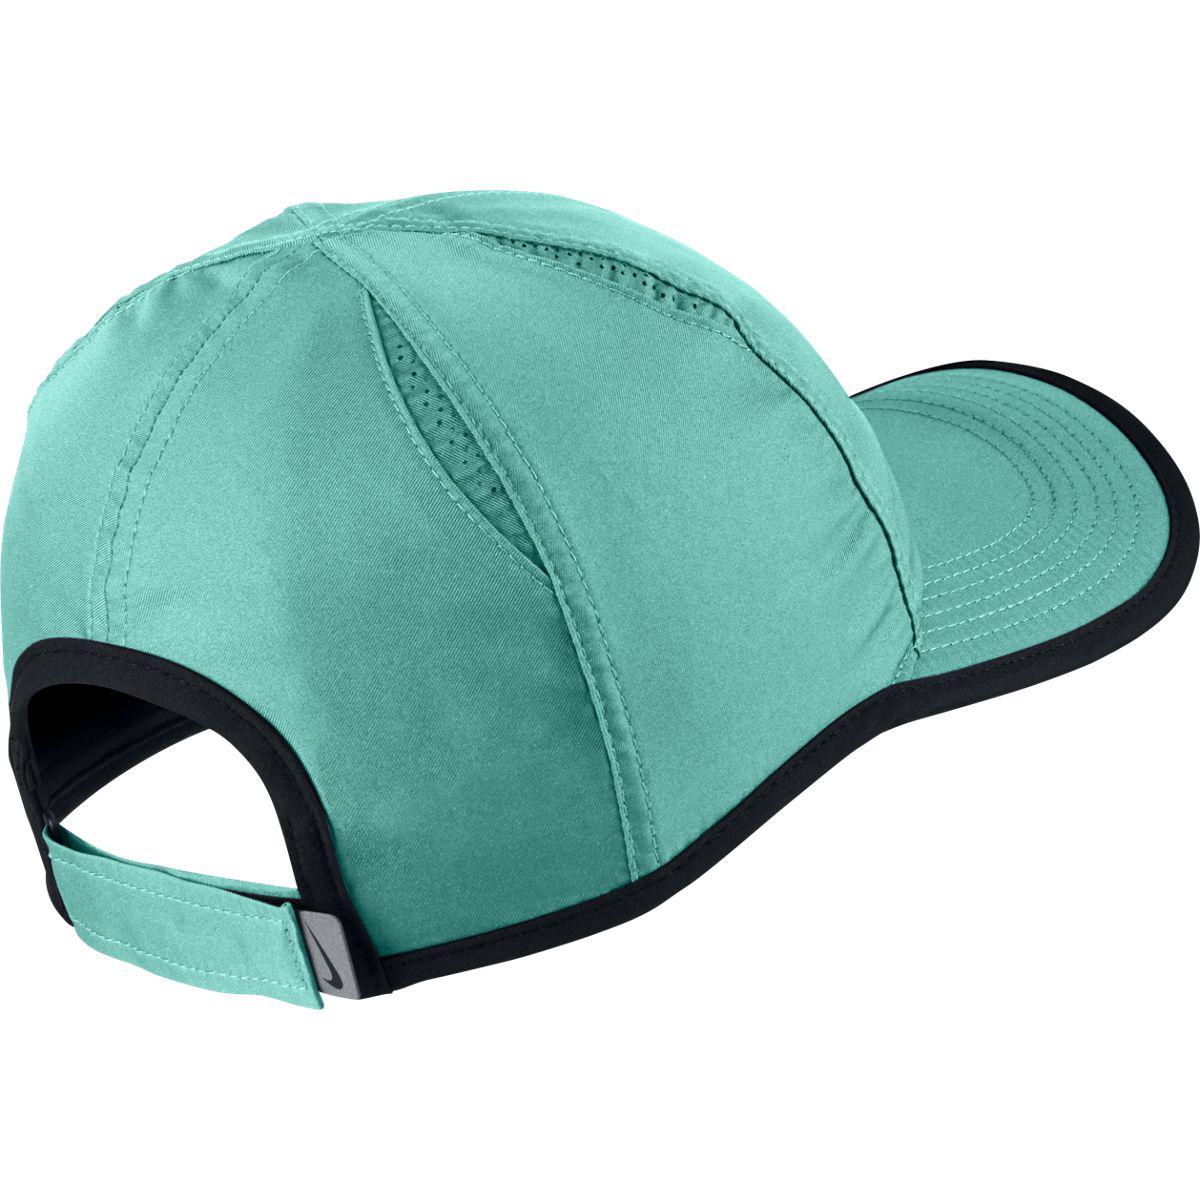 22198a2113f2c Nike Feather Light Adjustable Cap - Light Retro Black - Tennisnuts.com